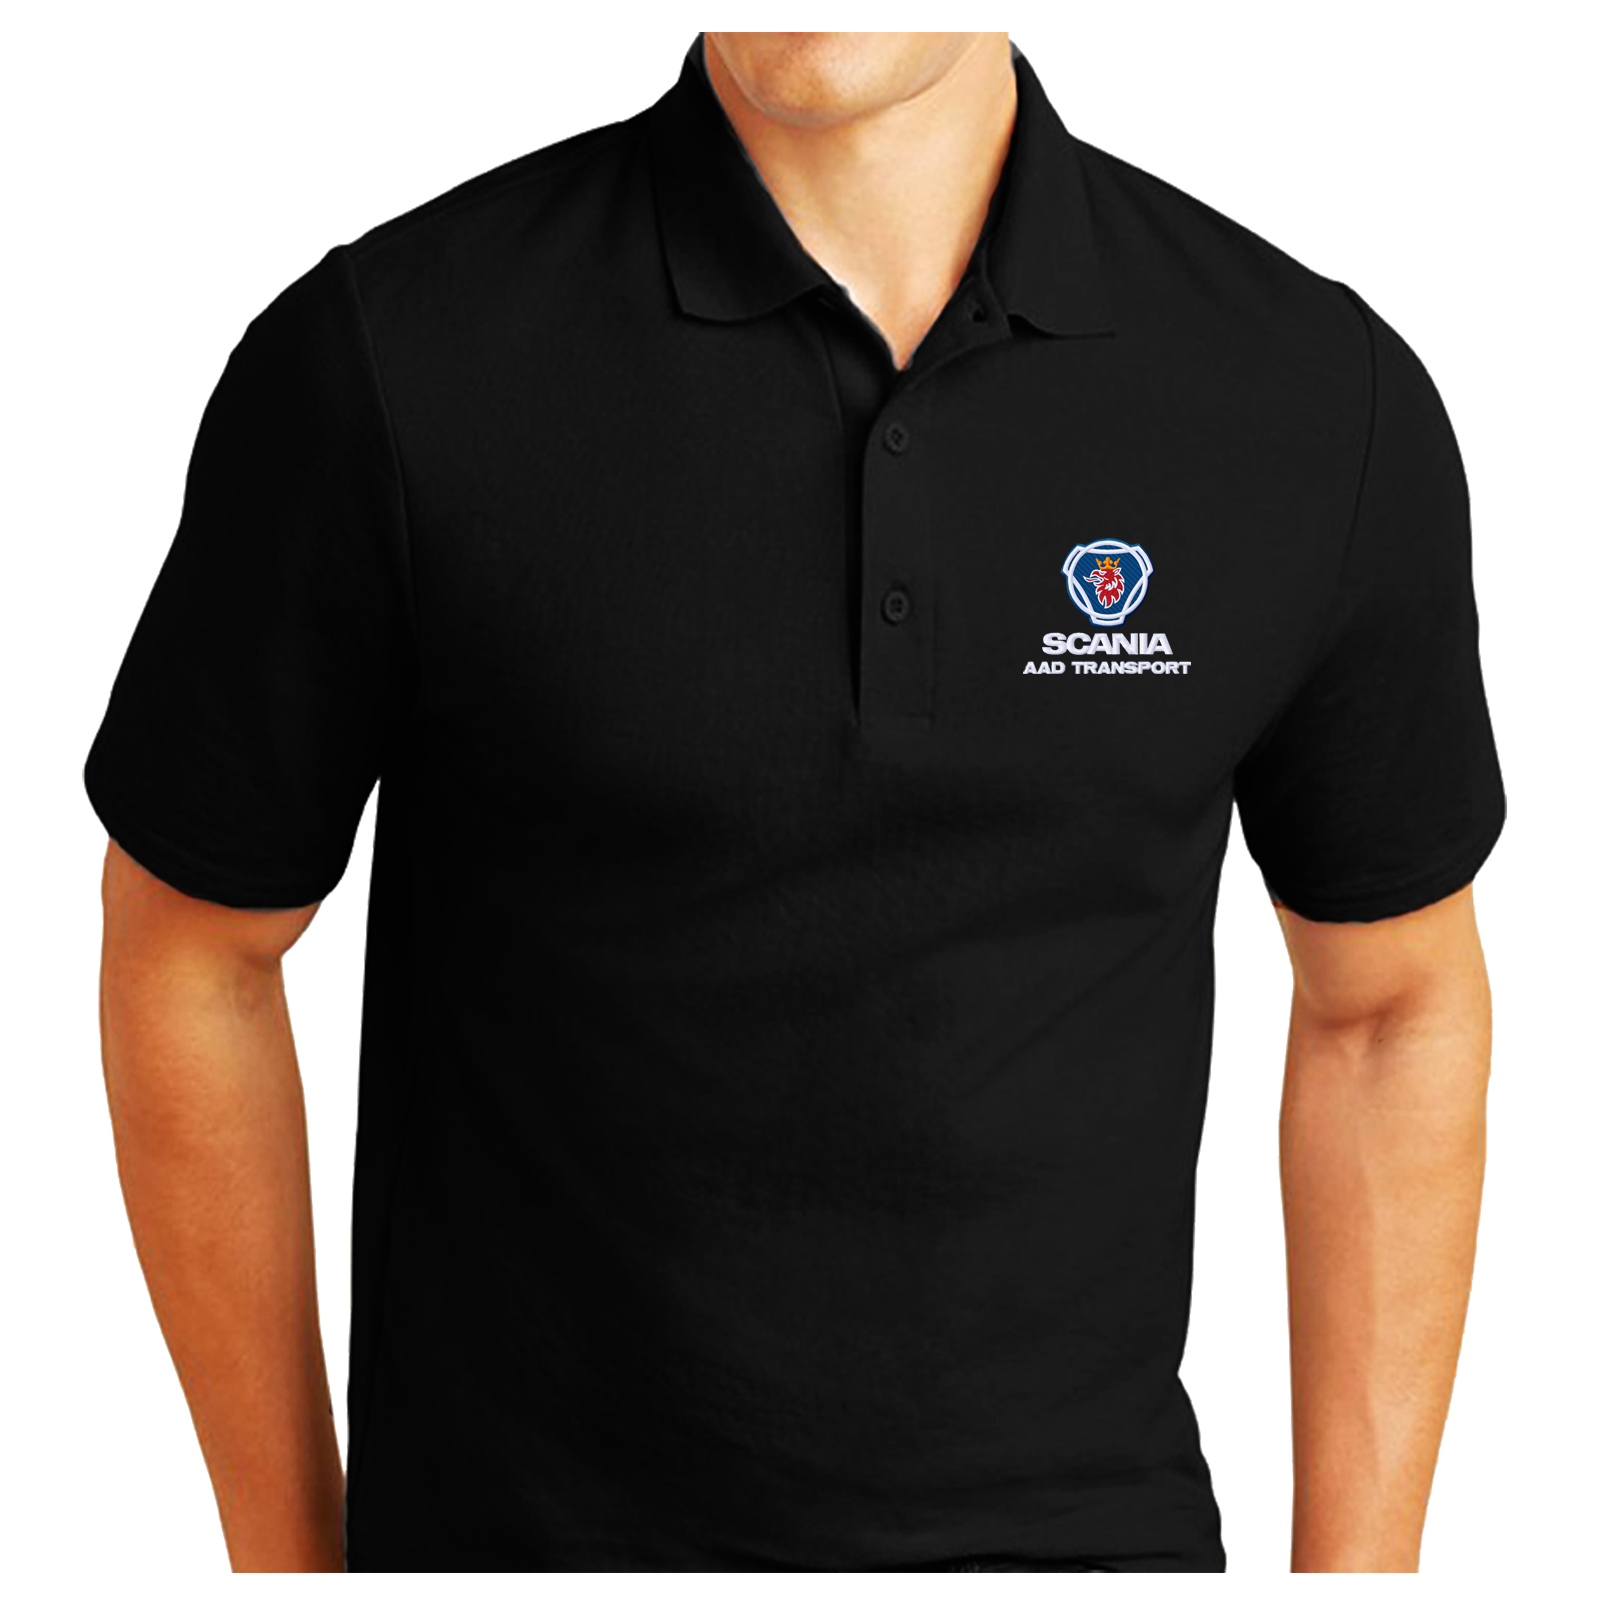 79fd619c1 SCANIA Logo Embroidered and Personalised Pique Polo Shirt Work ...